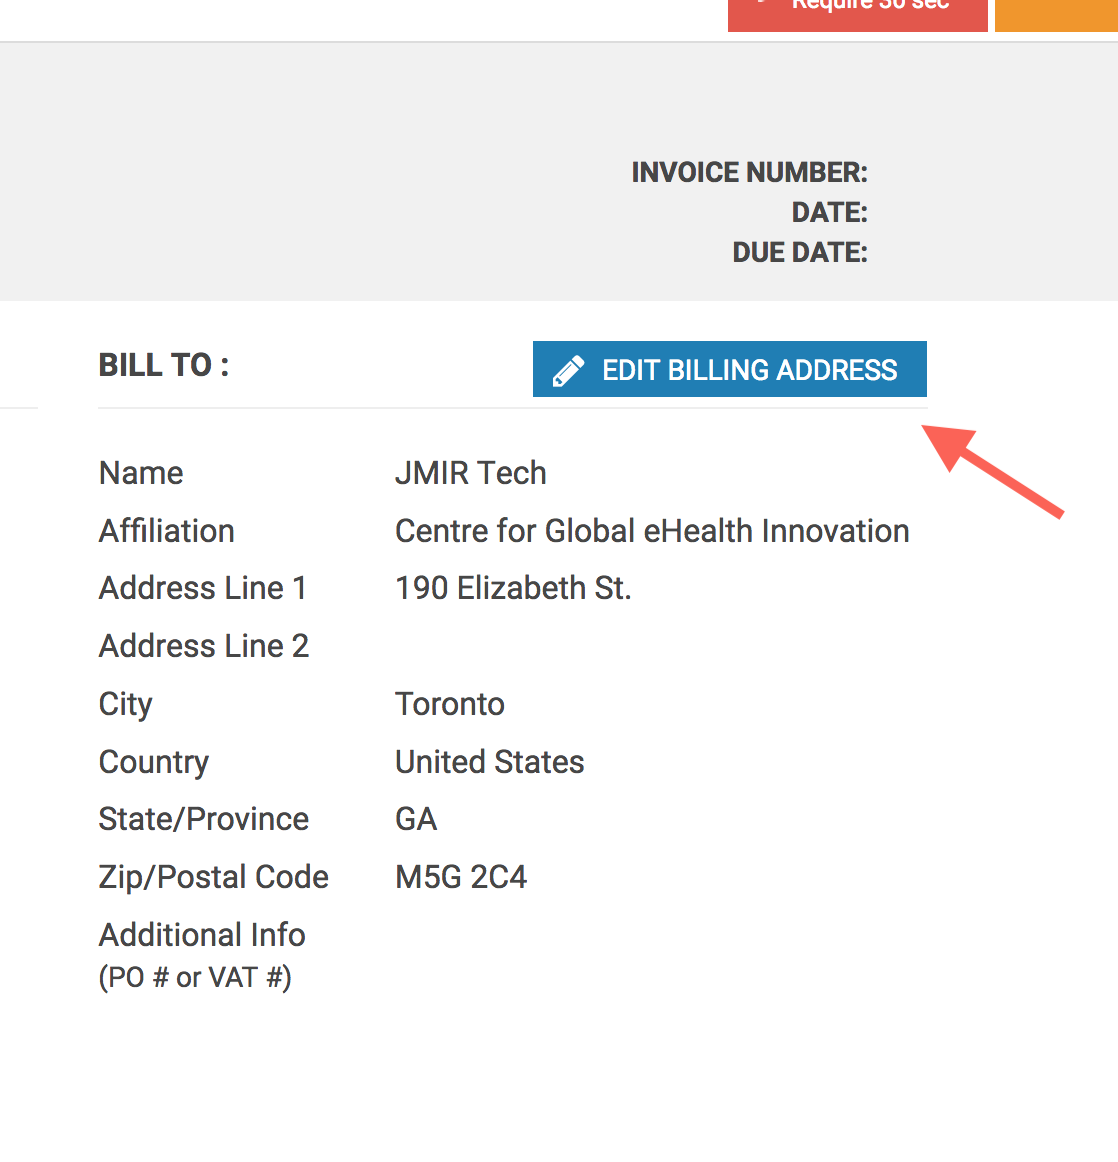 How Do I Change The Billing Address On My Invoice?